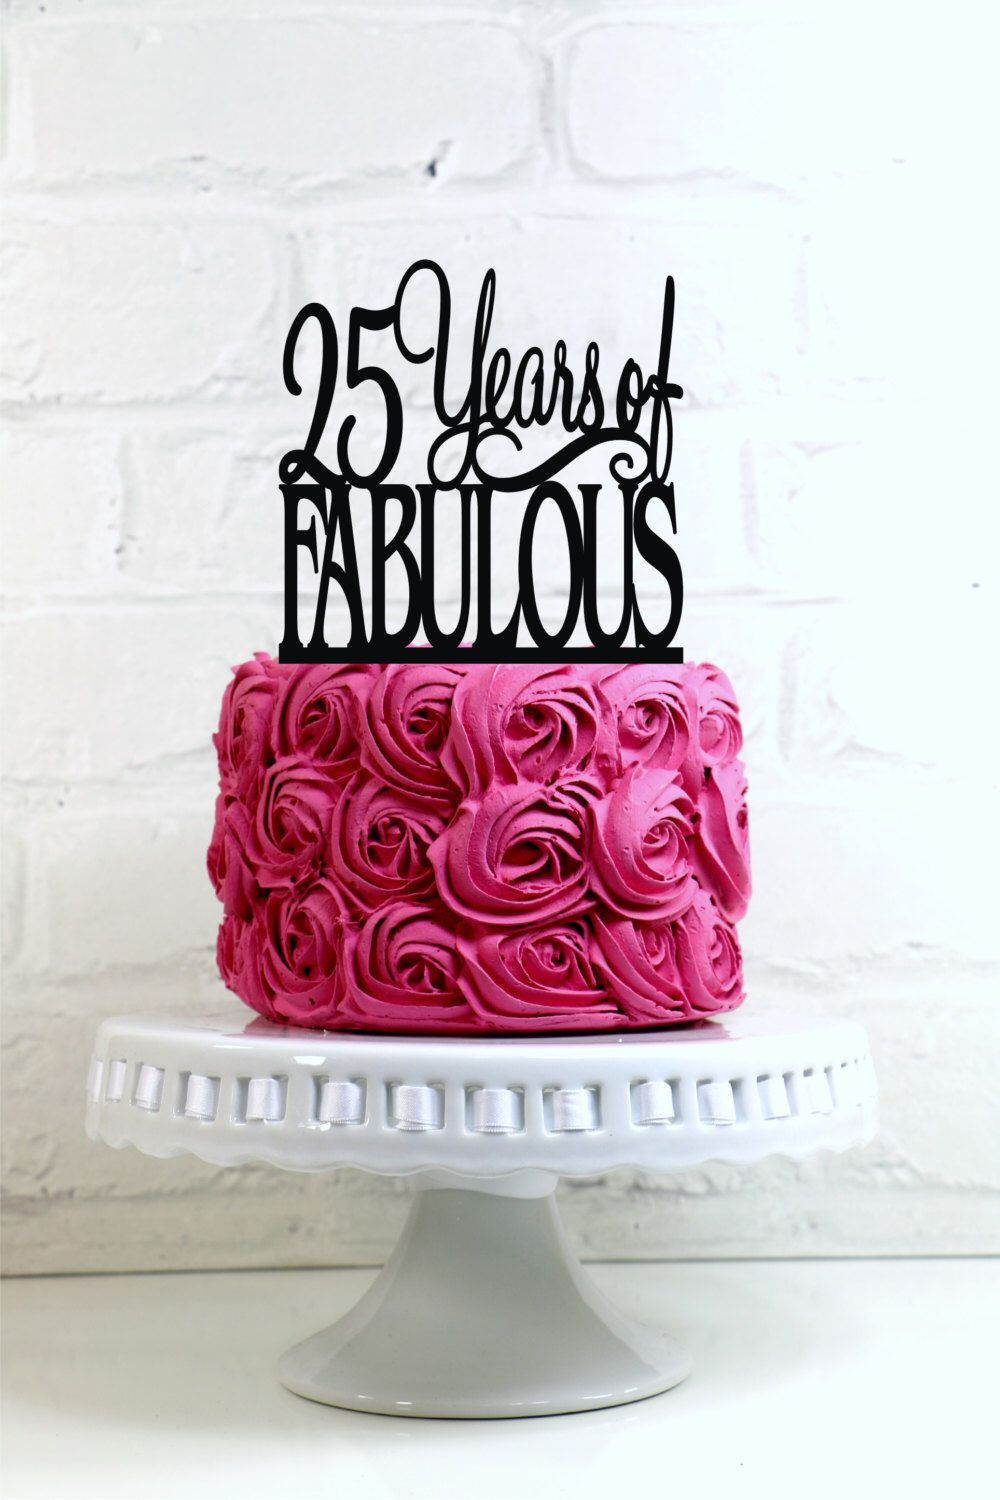 Best ideas about 25 Birthday Cake . Save or Pin Best 25 25 birthday ideas on Pinterest Now.